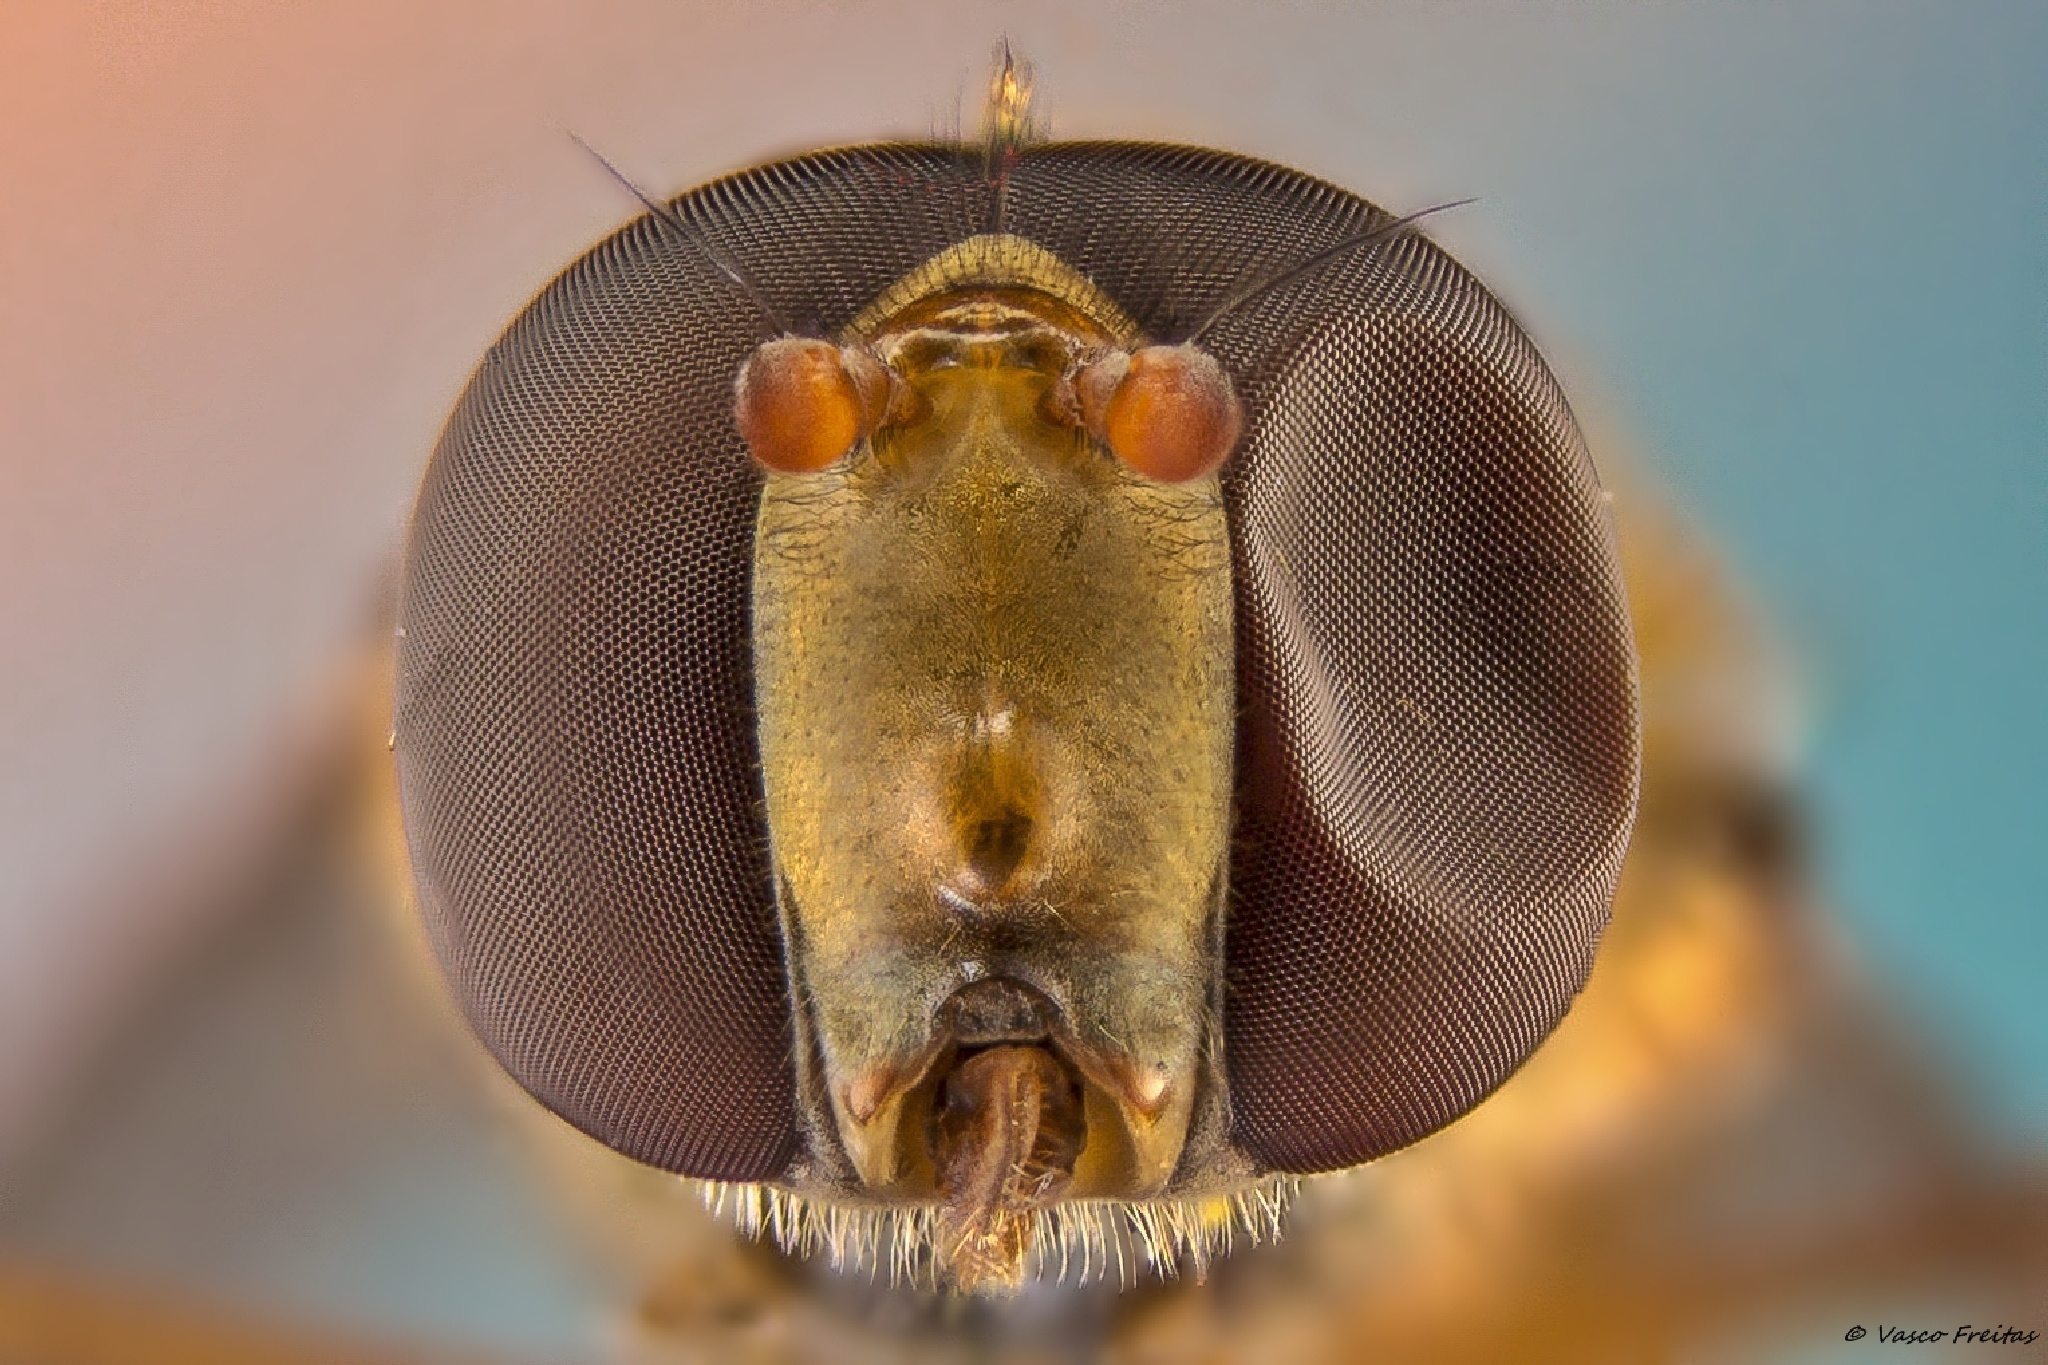 The black eye from insect world by Thunder